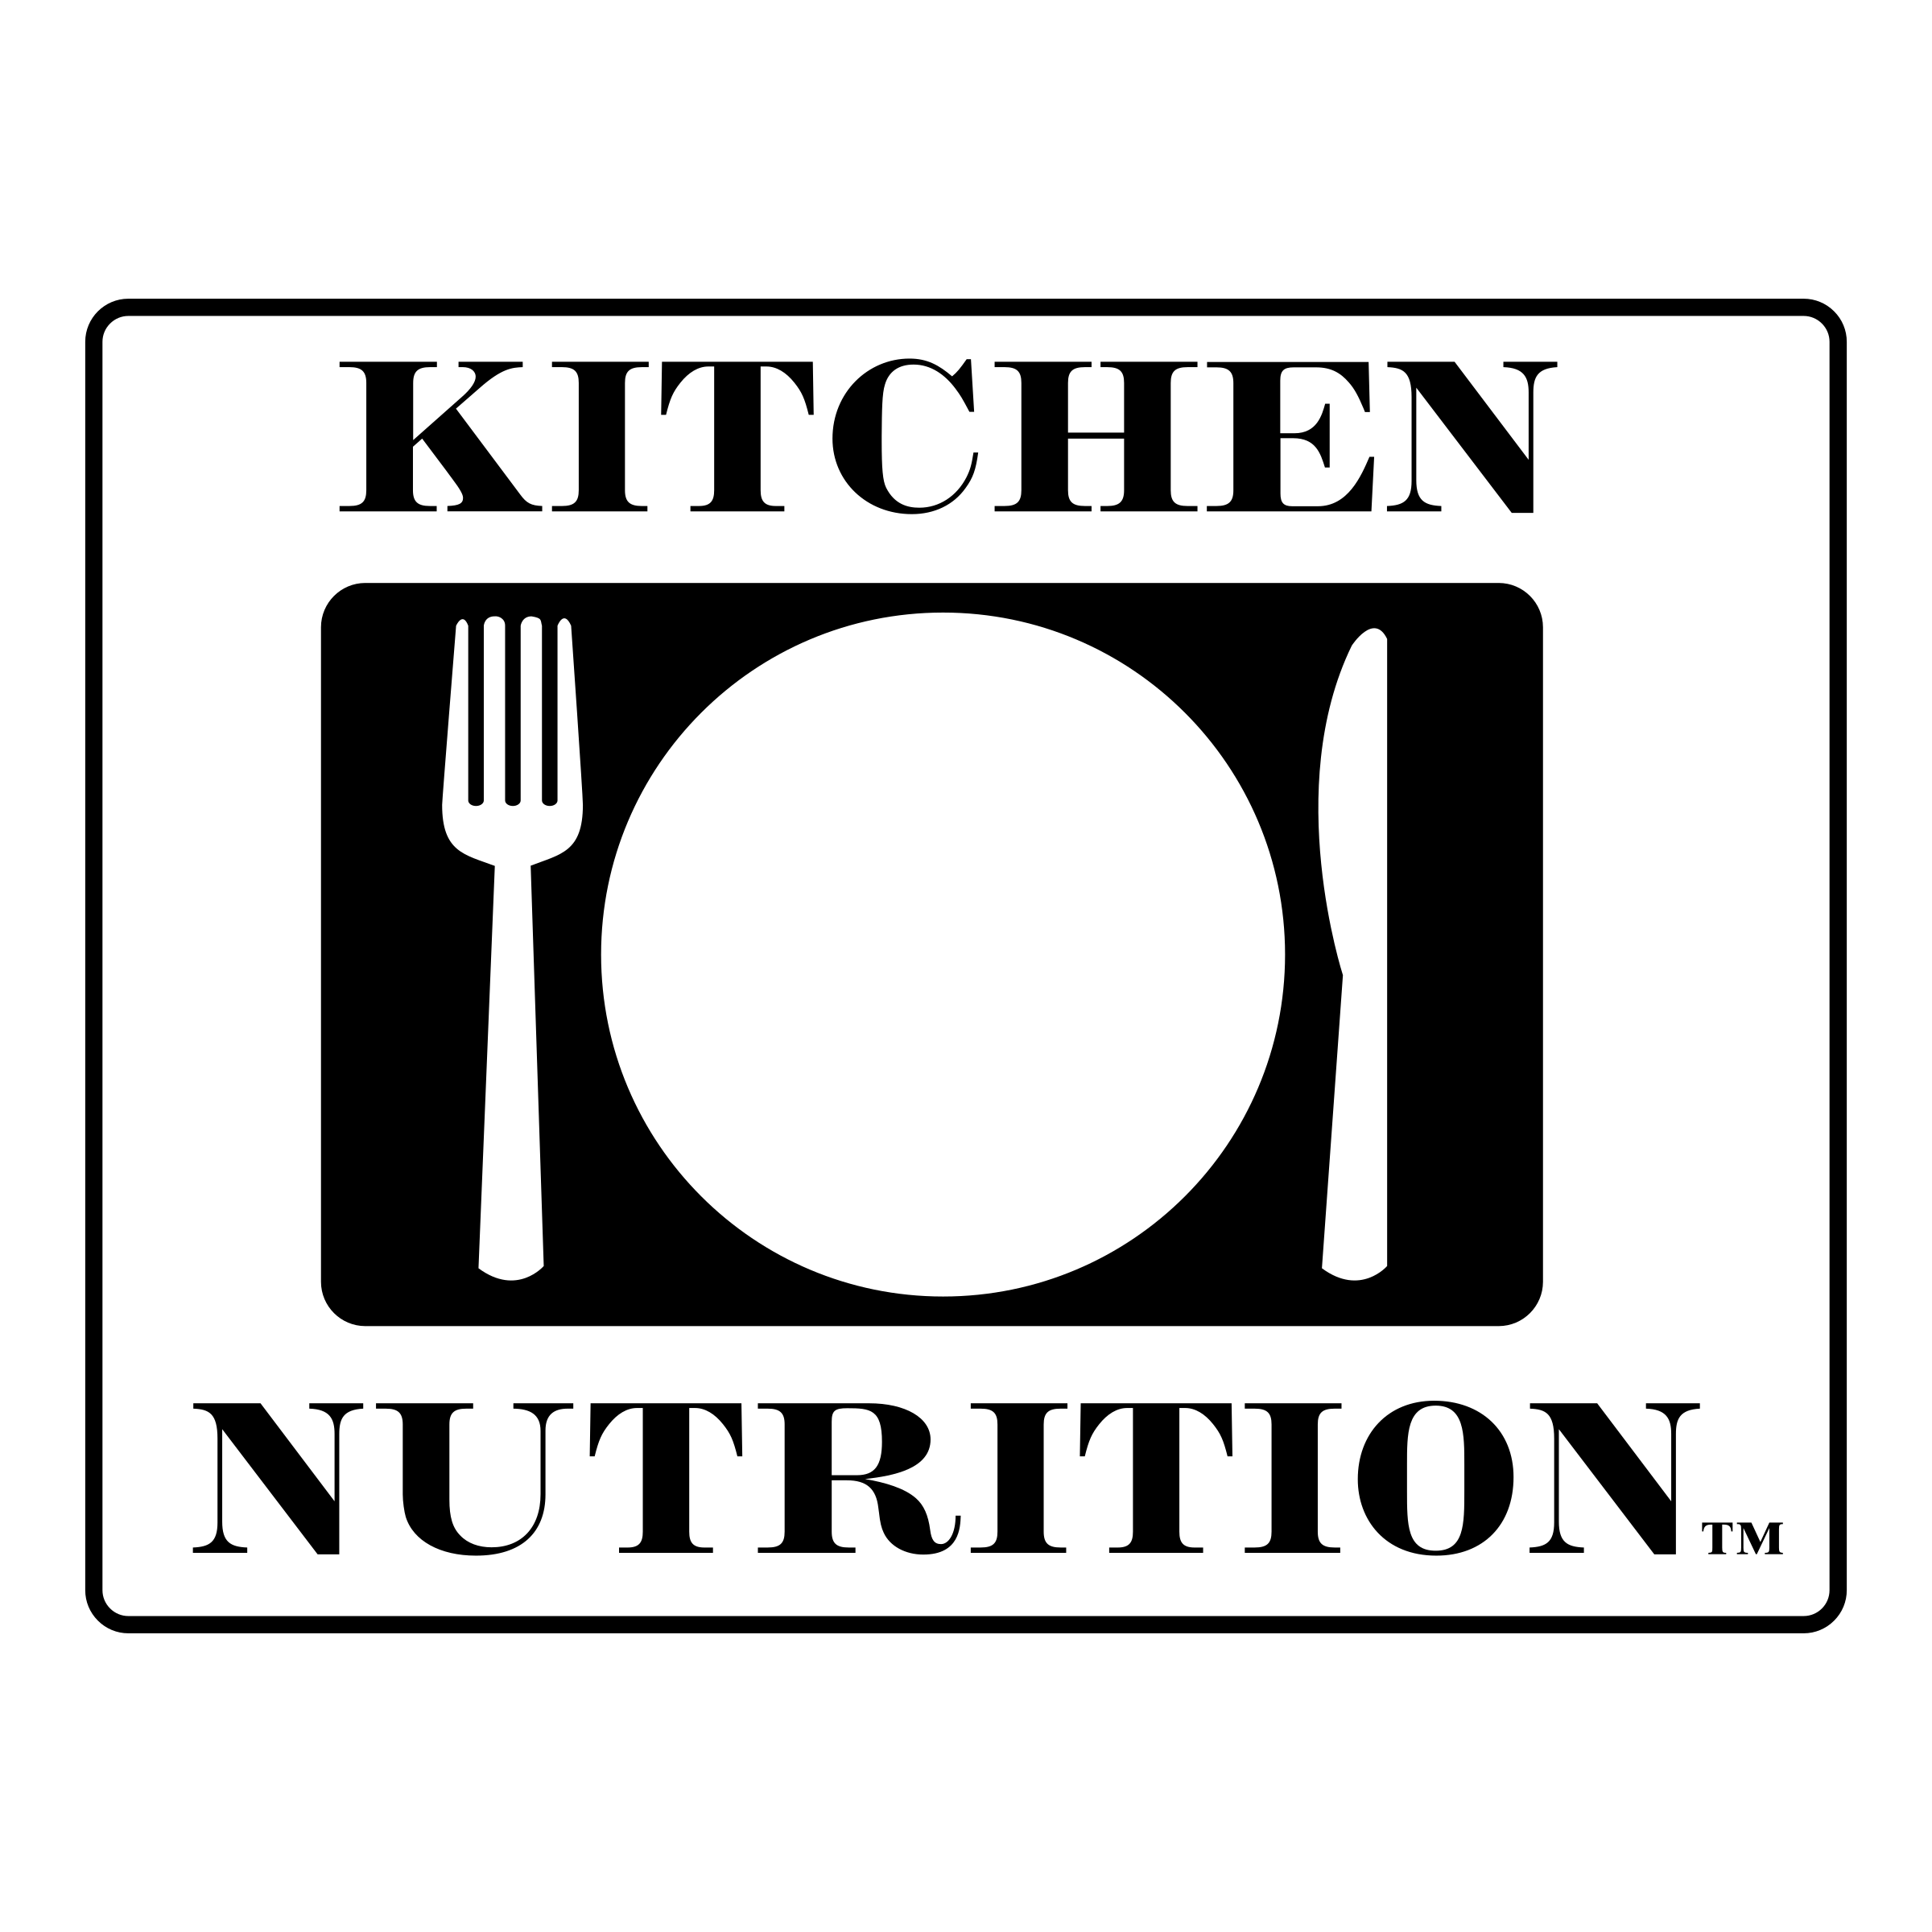 Kitchen Nutrition Logo PNG Transparent & SVG Vector - Freebie Supply